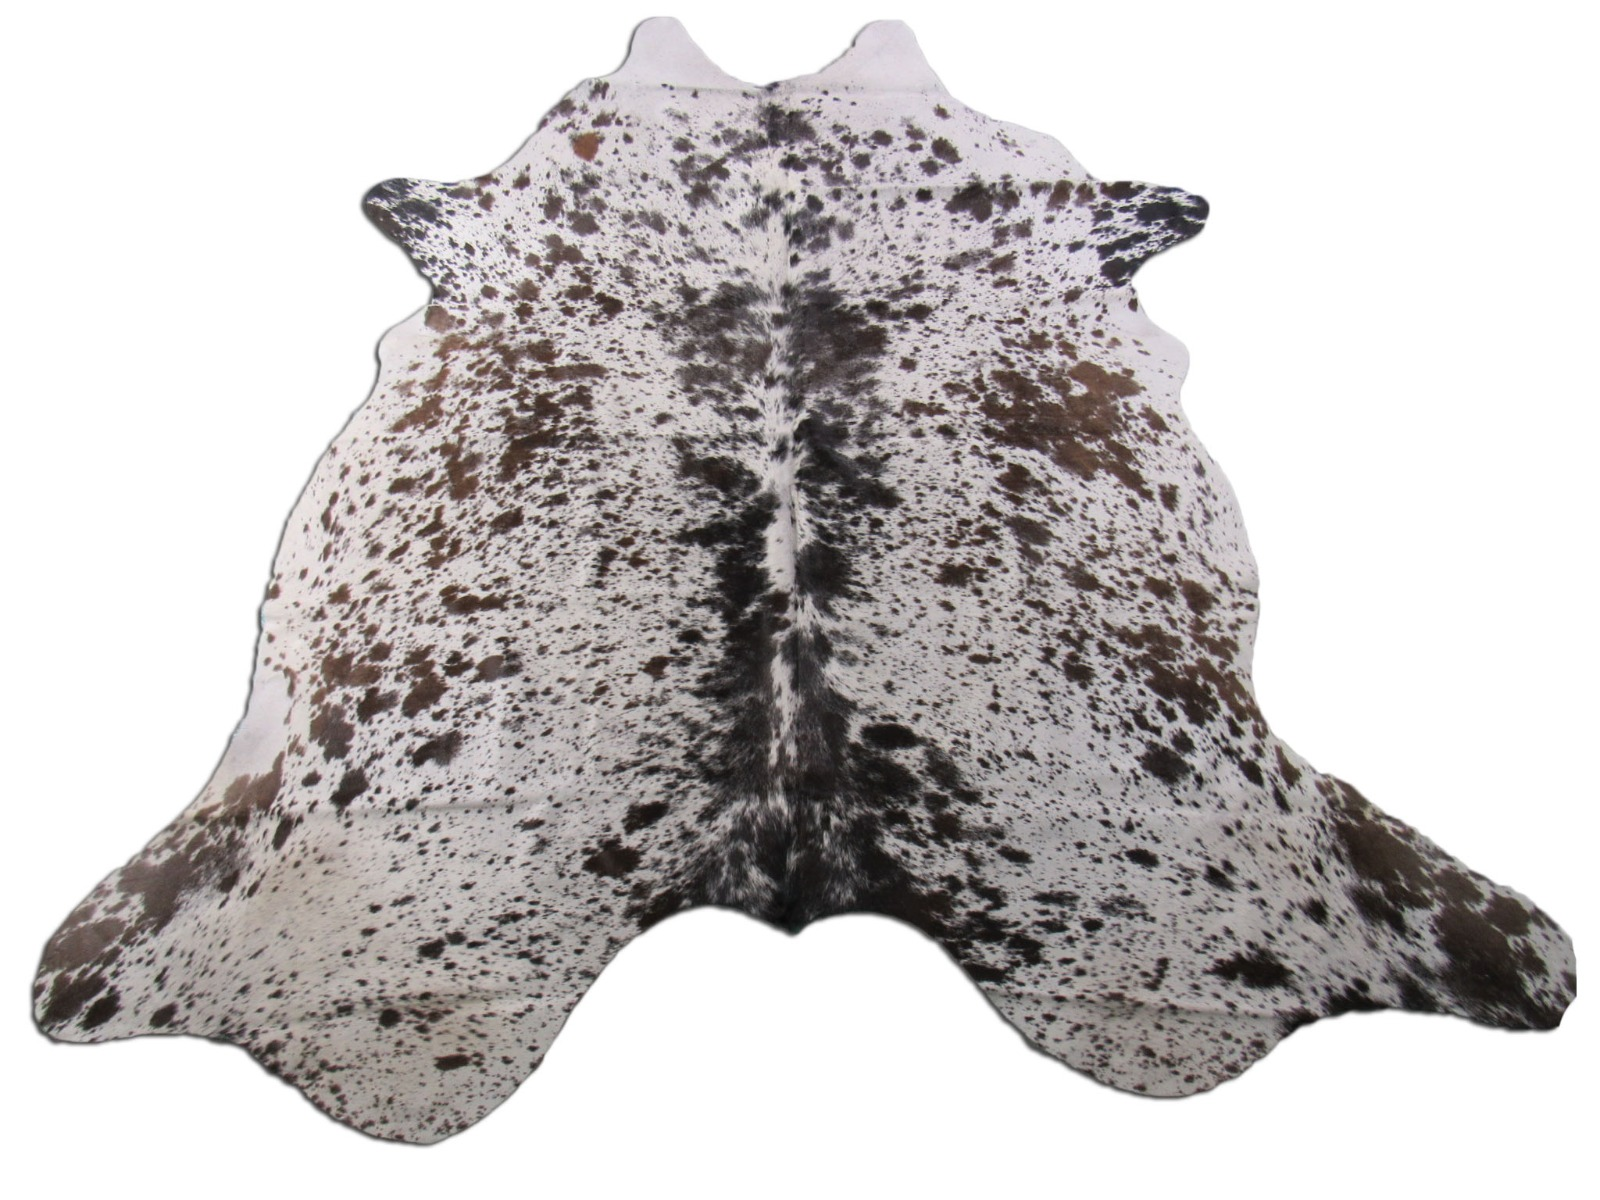 A-1265 Brown and White Salt & Pepper Cowhide Rug Size: 7' X 6 1/4'